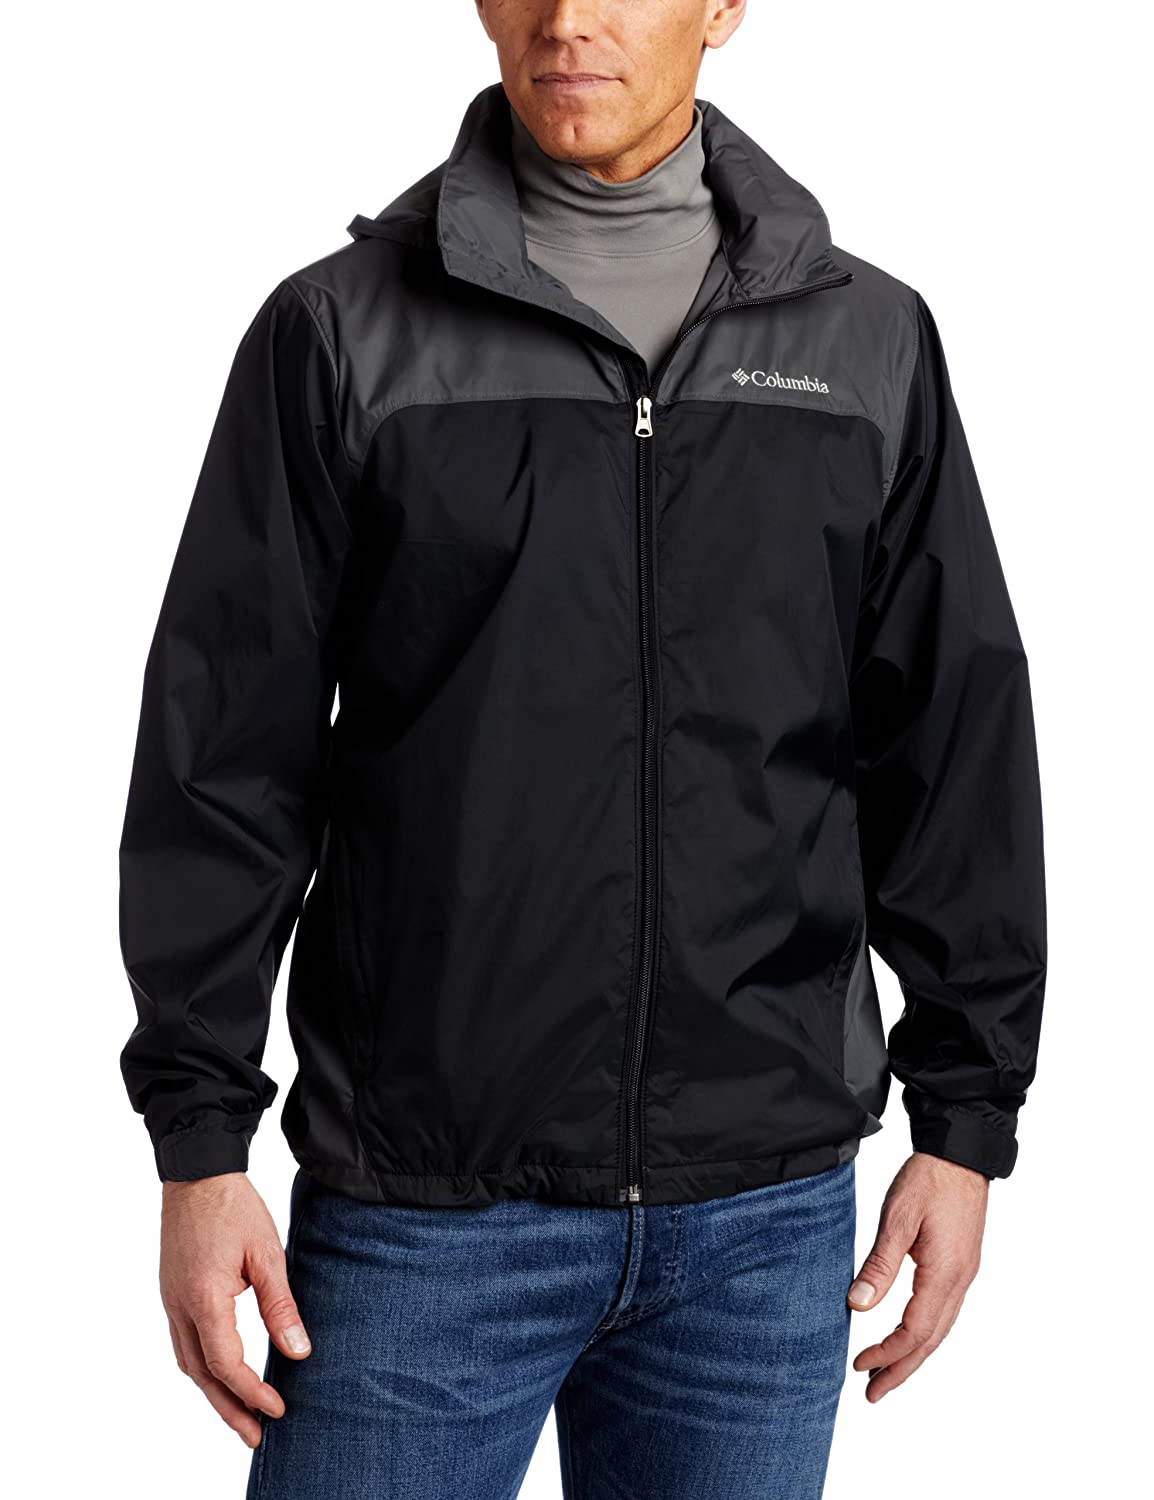 Columbia Men 's Big & Tall glennaker Lago Packable Chaqueta de lluvia 3X más|Negro (Black/Grill)